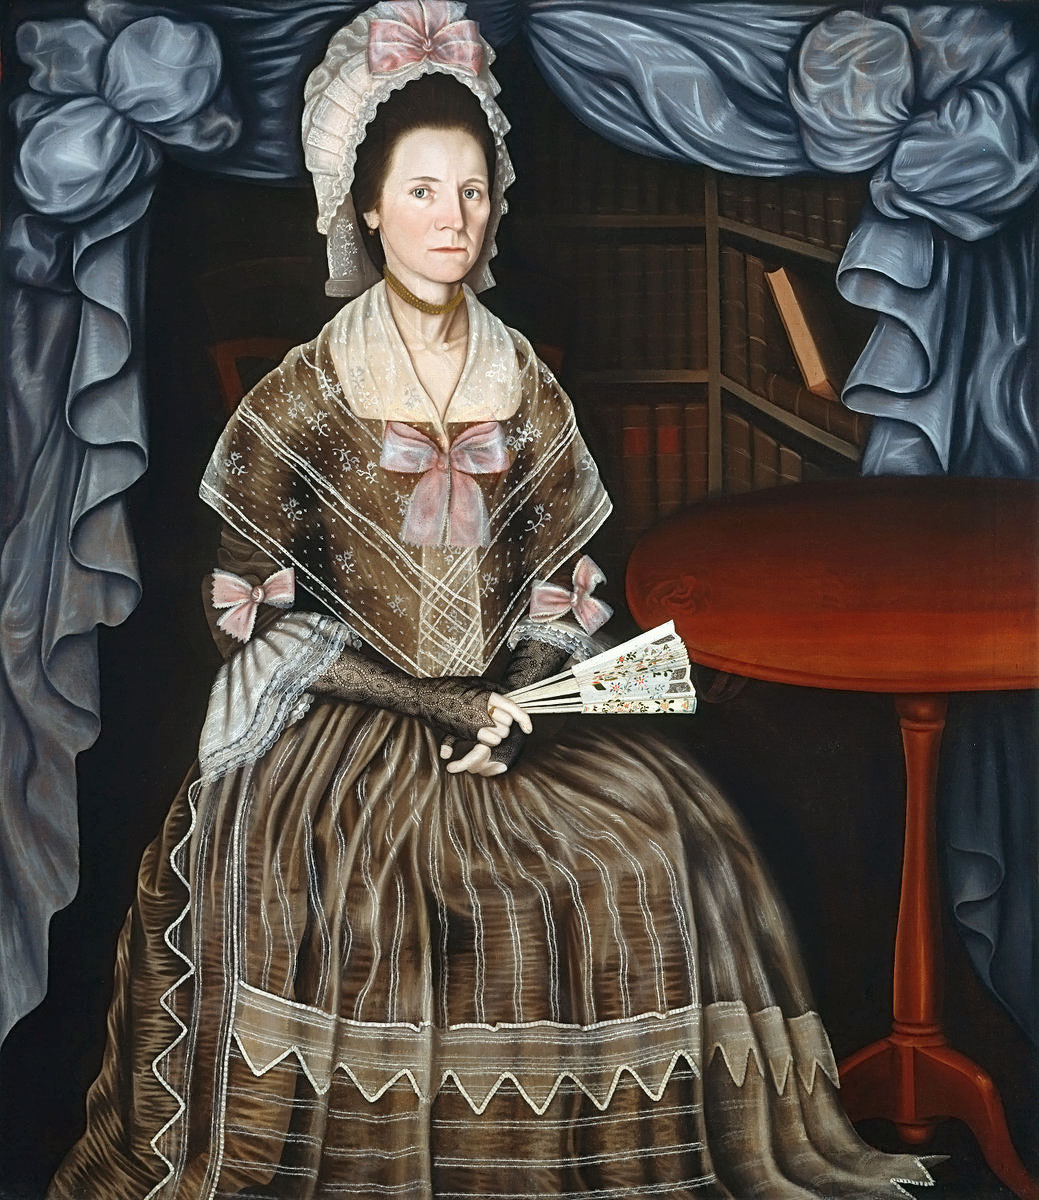 Winthrop Chandler (1747–90), Anna Paine Chandler, c. 1780, oil on canvas